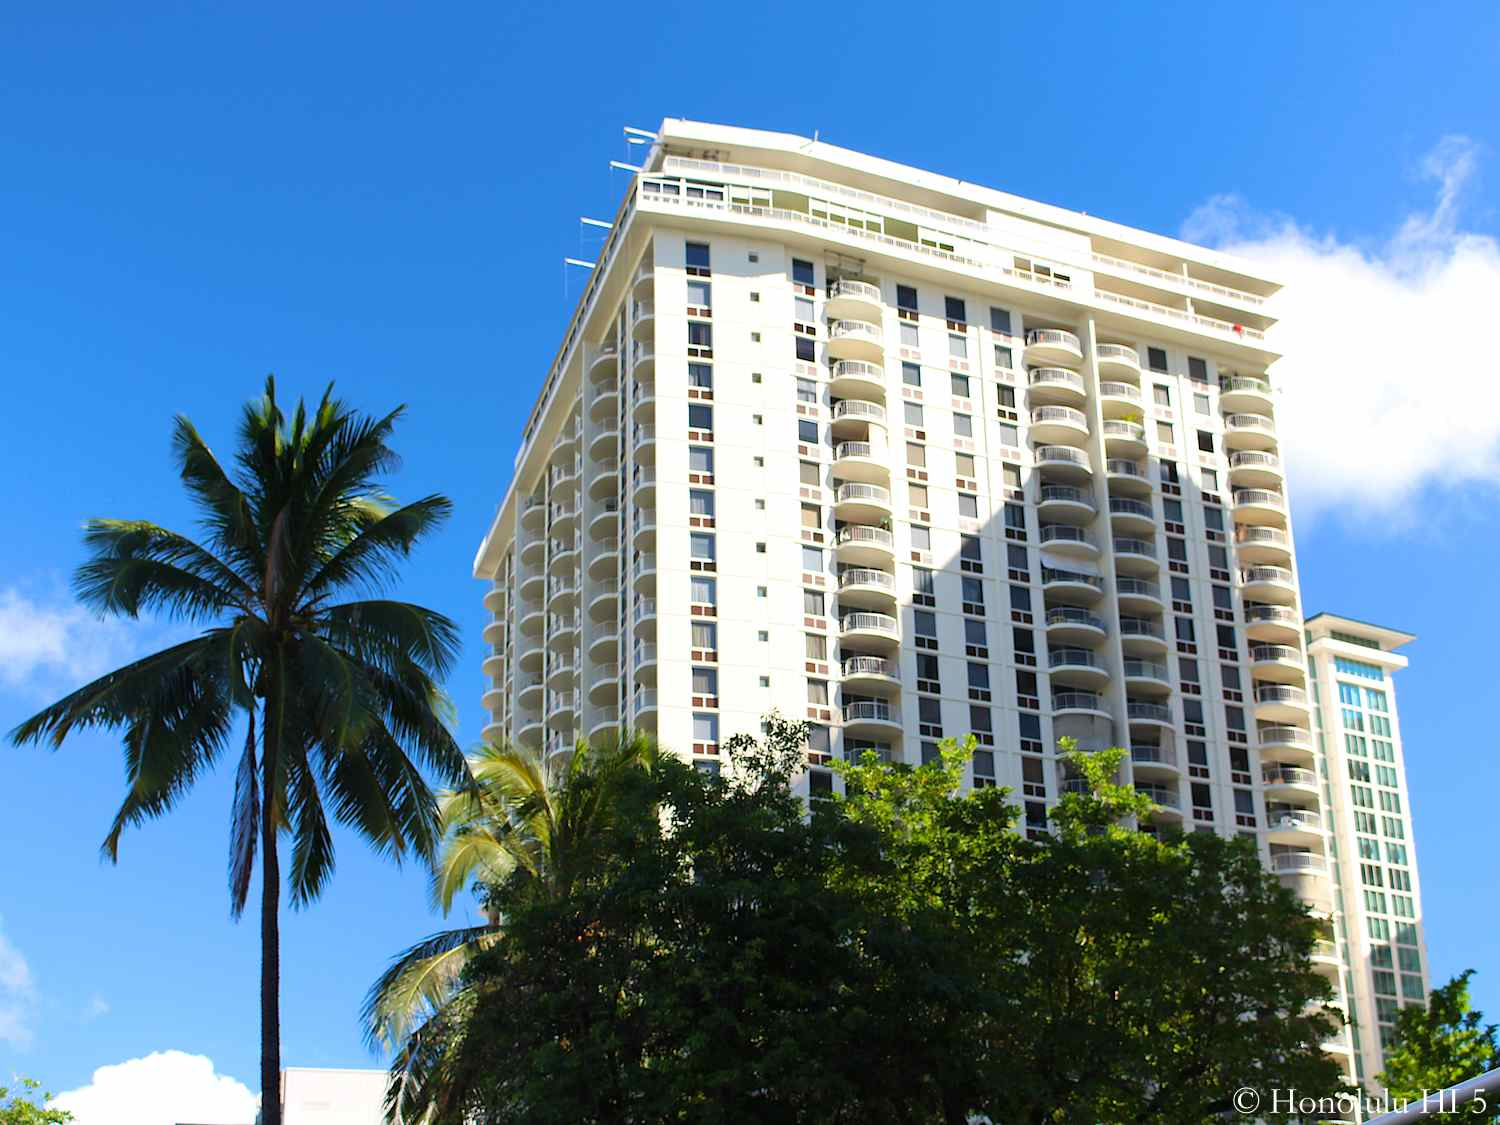 Top of 1717 Ala Wai Condo in Waikiki - a White Older Condo with Balconies